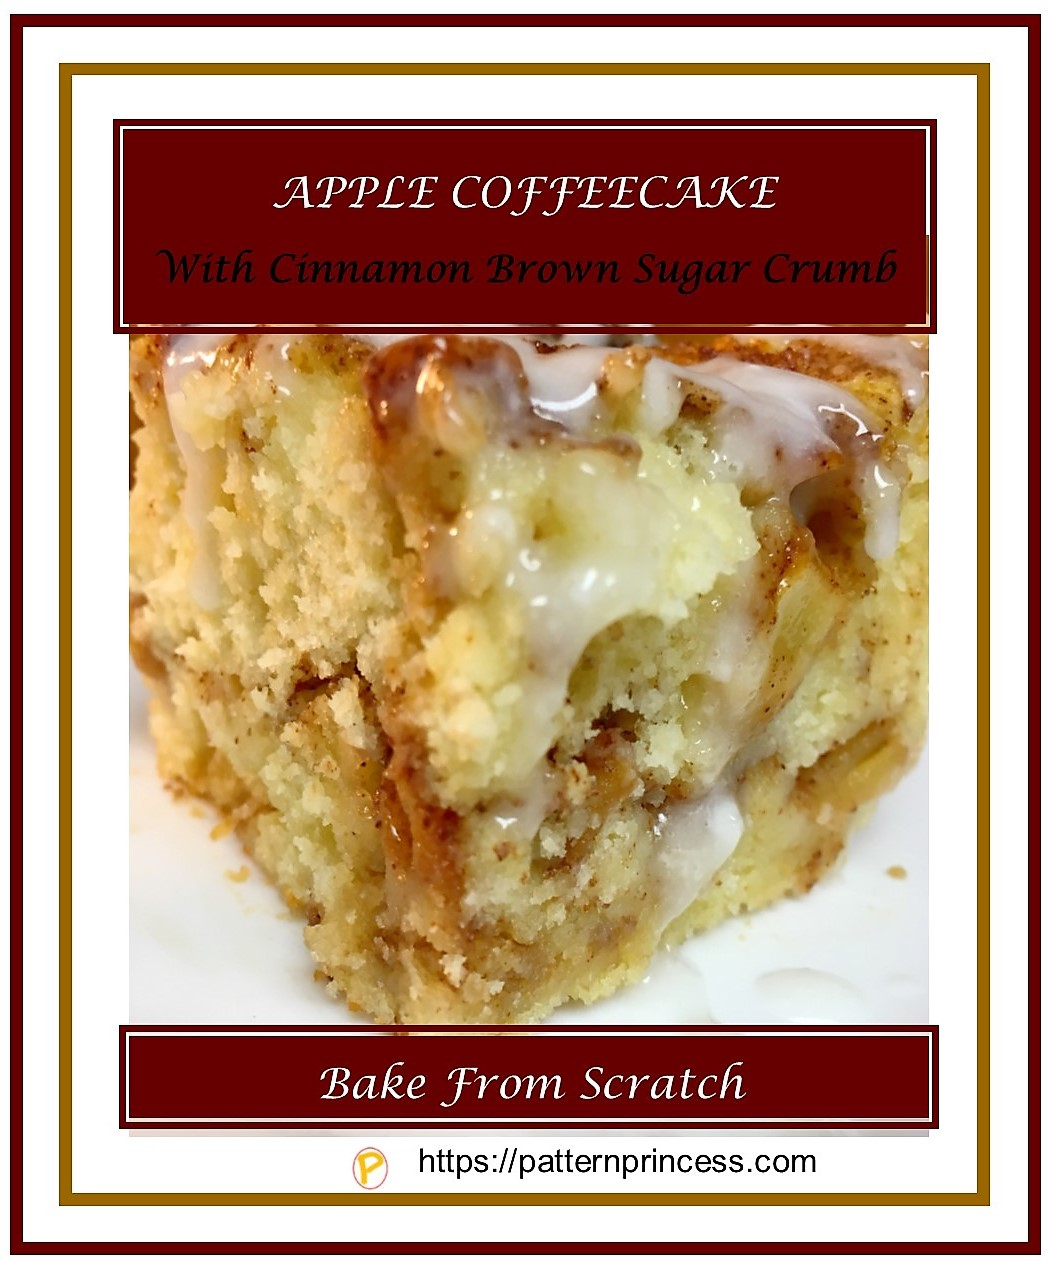 Apple Coffeecake with Cinnamon Brown Sugar Crumb 1